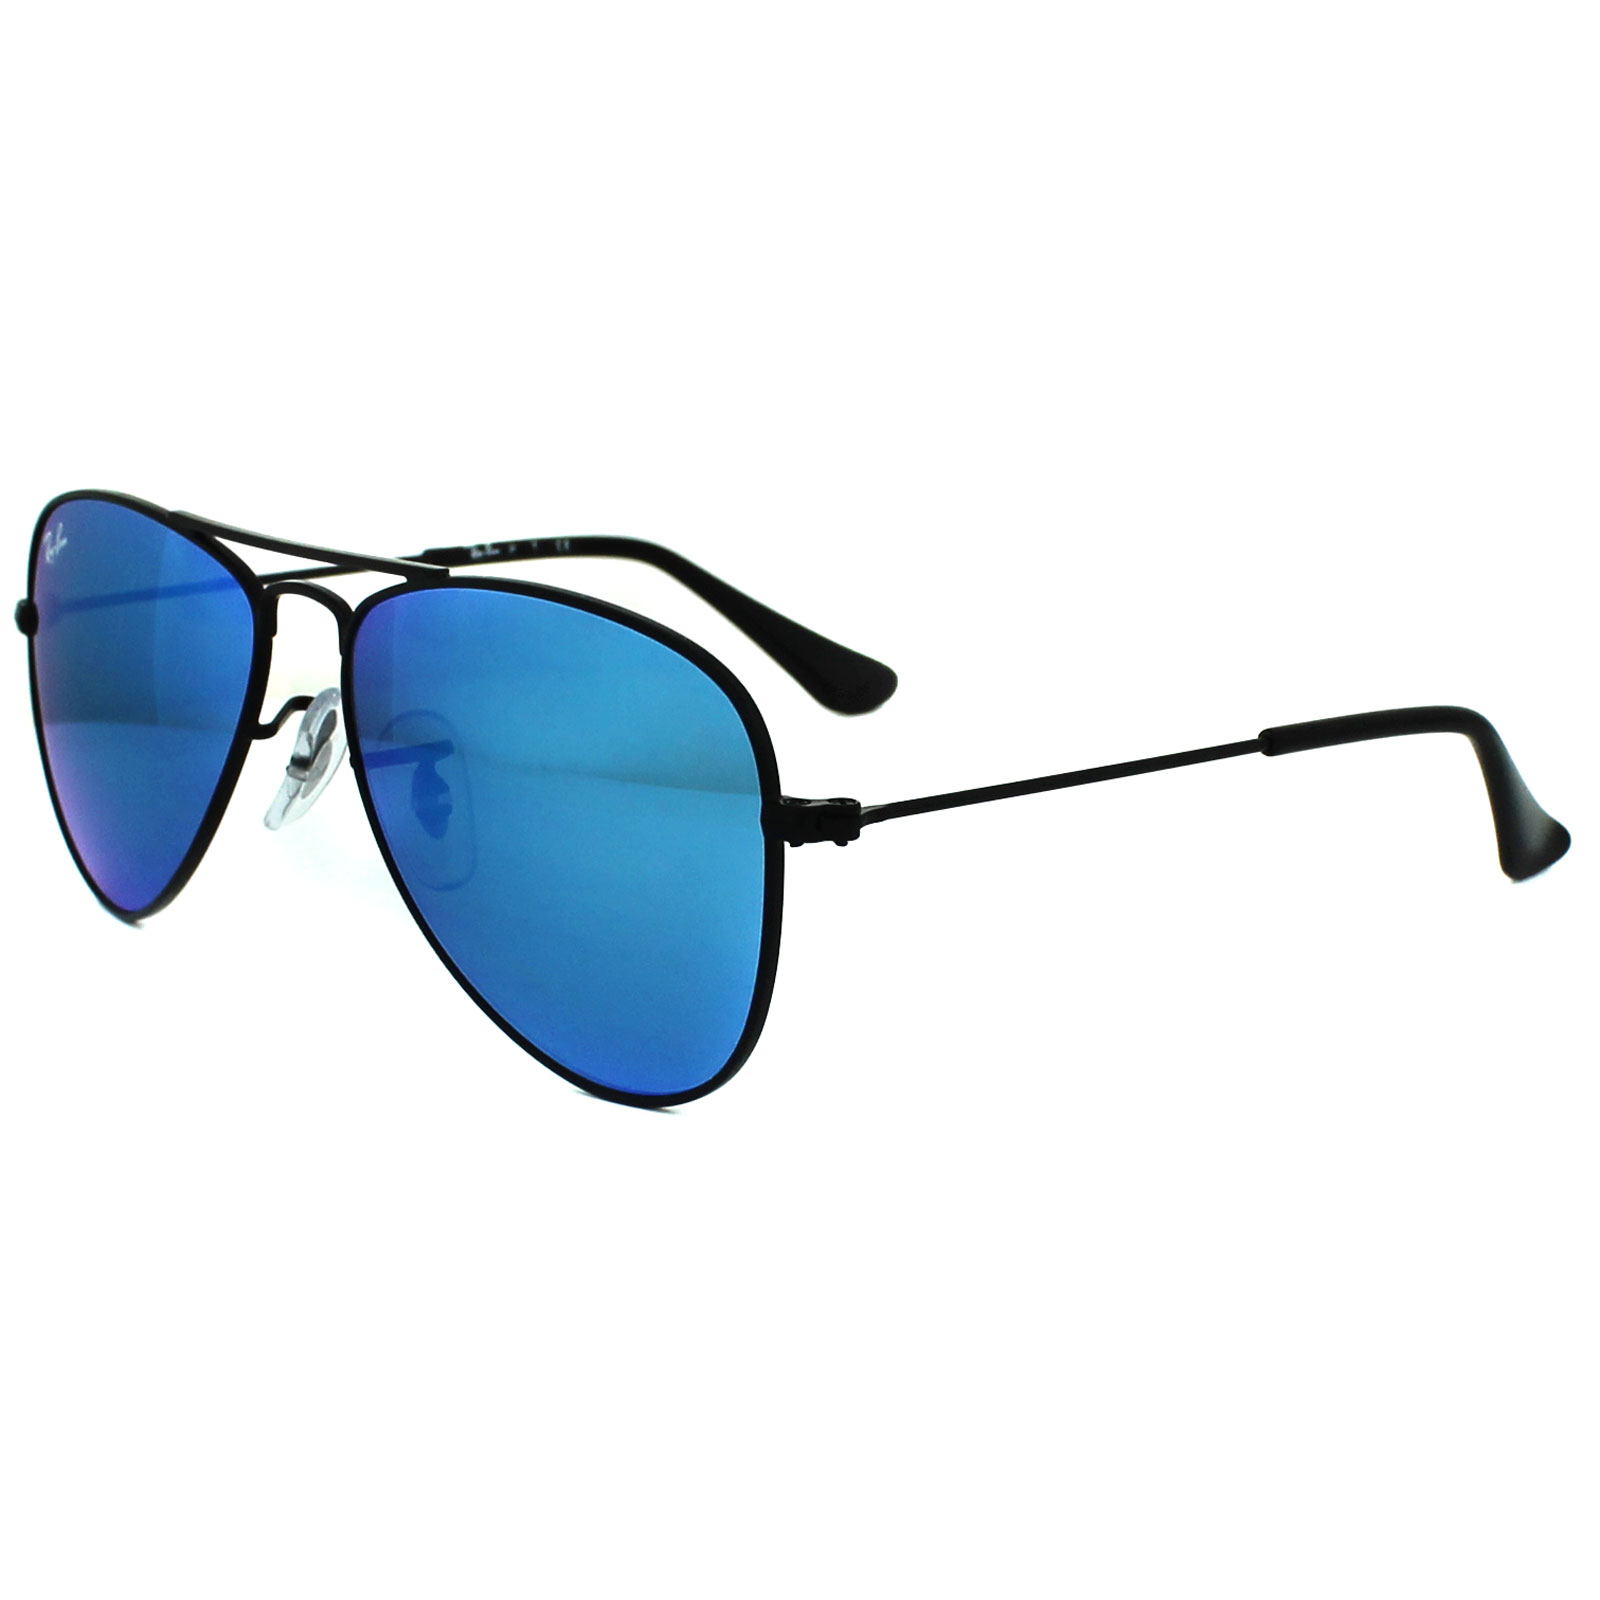 ray ban junior 9506s aviator sunglasses  ray ban junior sunglasses 9506 201/55 black blue flash mirror